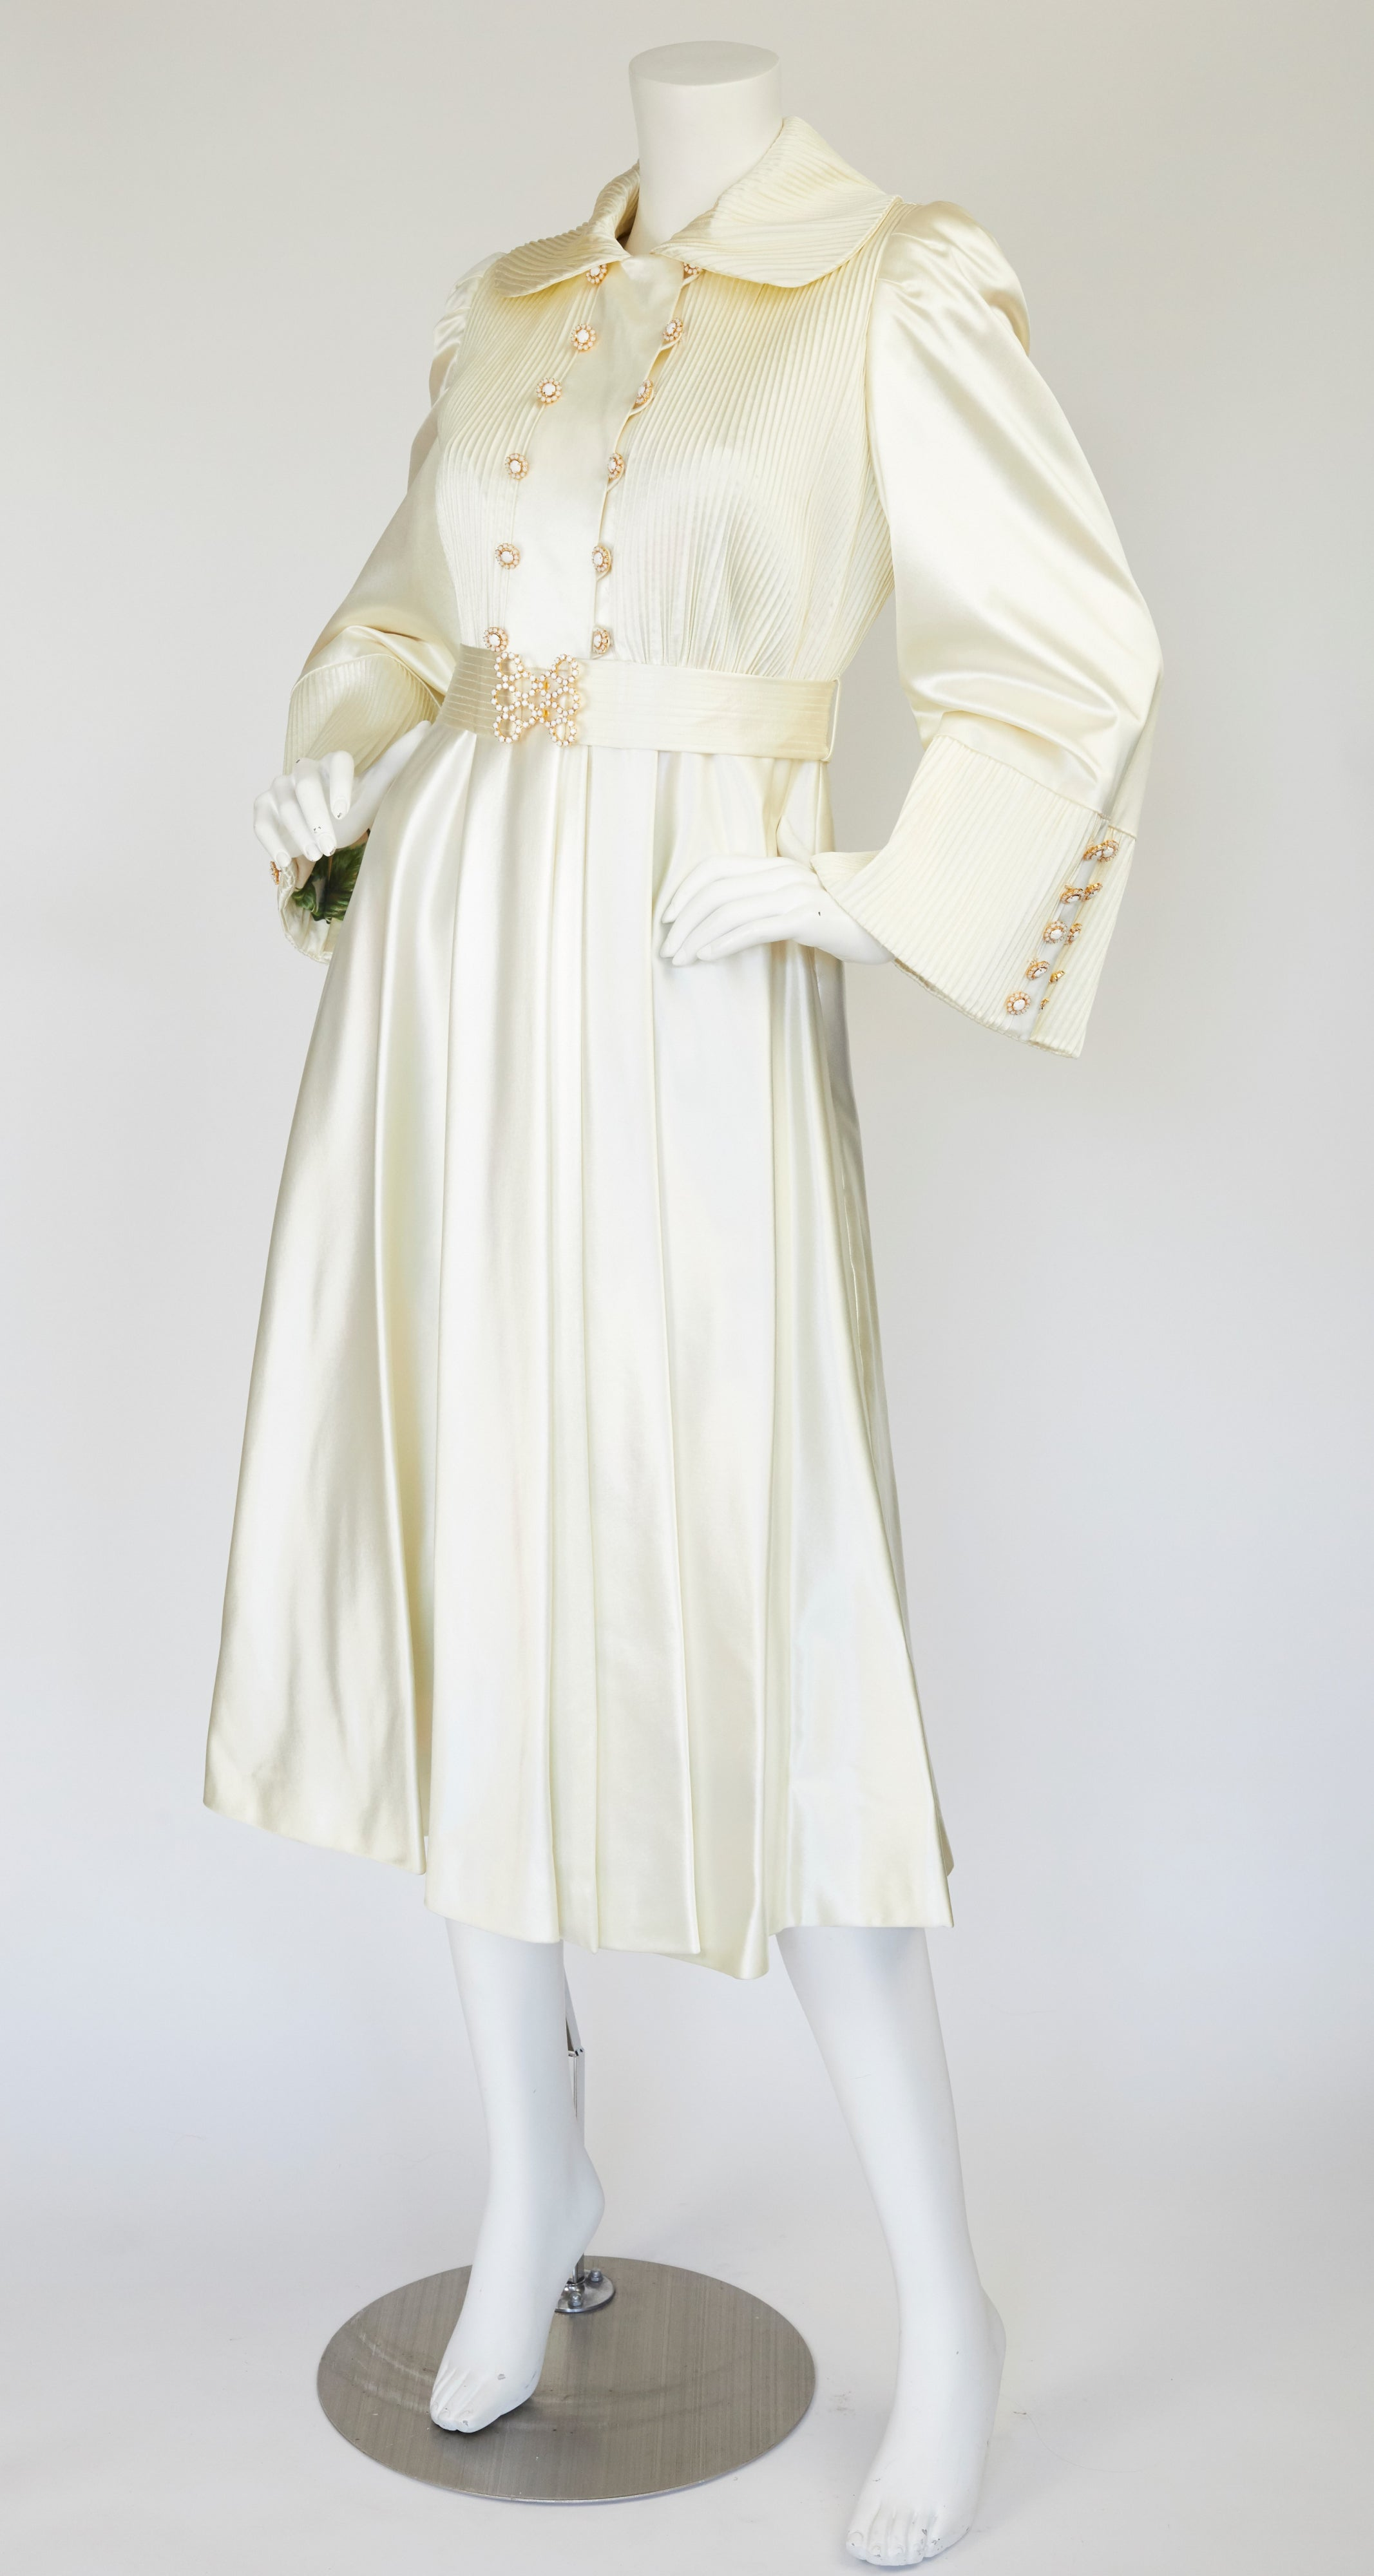 1970s Pintuck Cream Satin Floral Silk Lining Bridal Coat